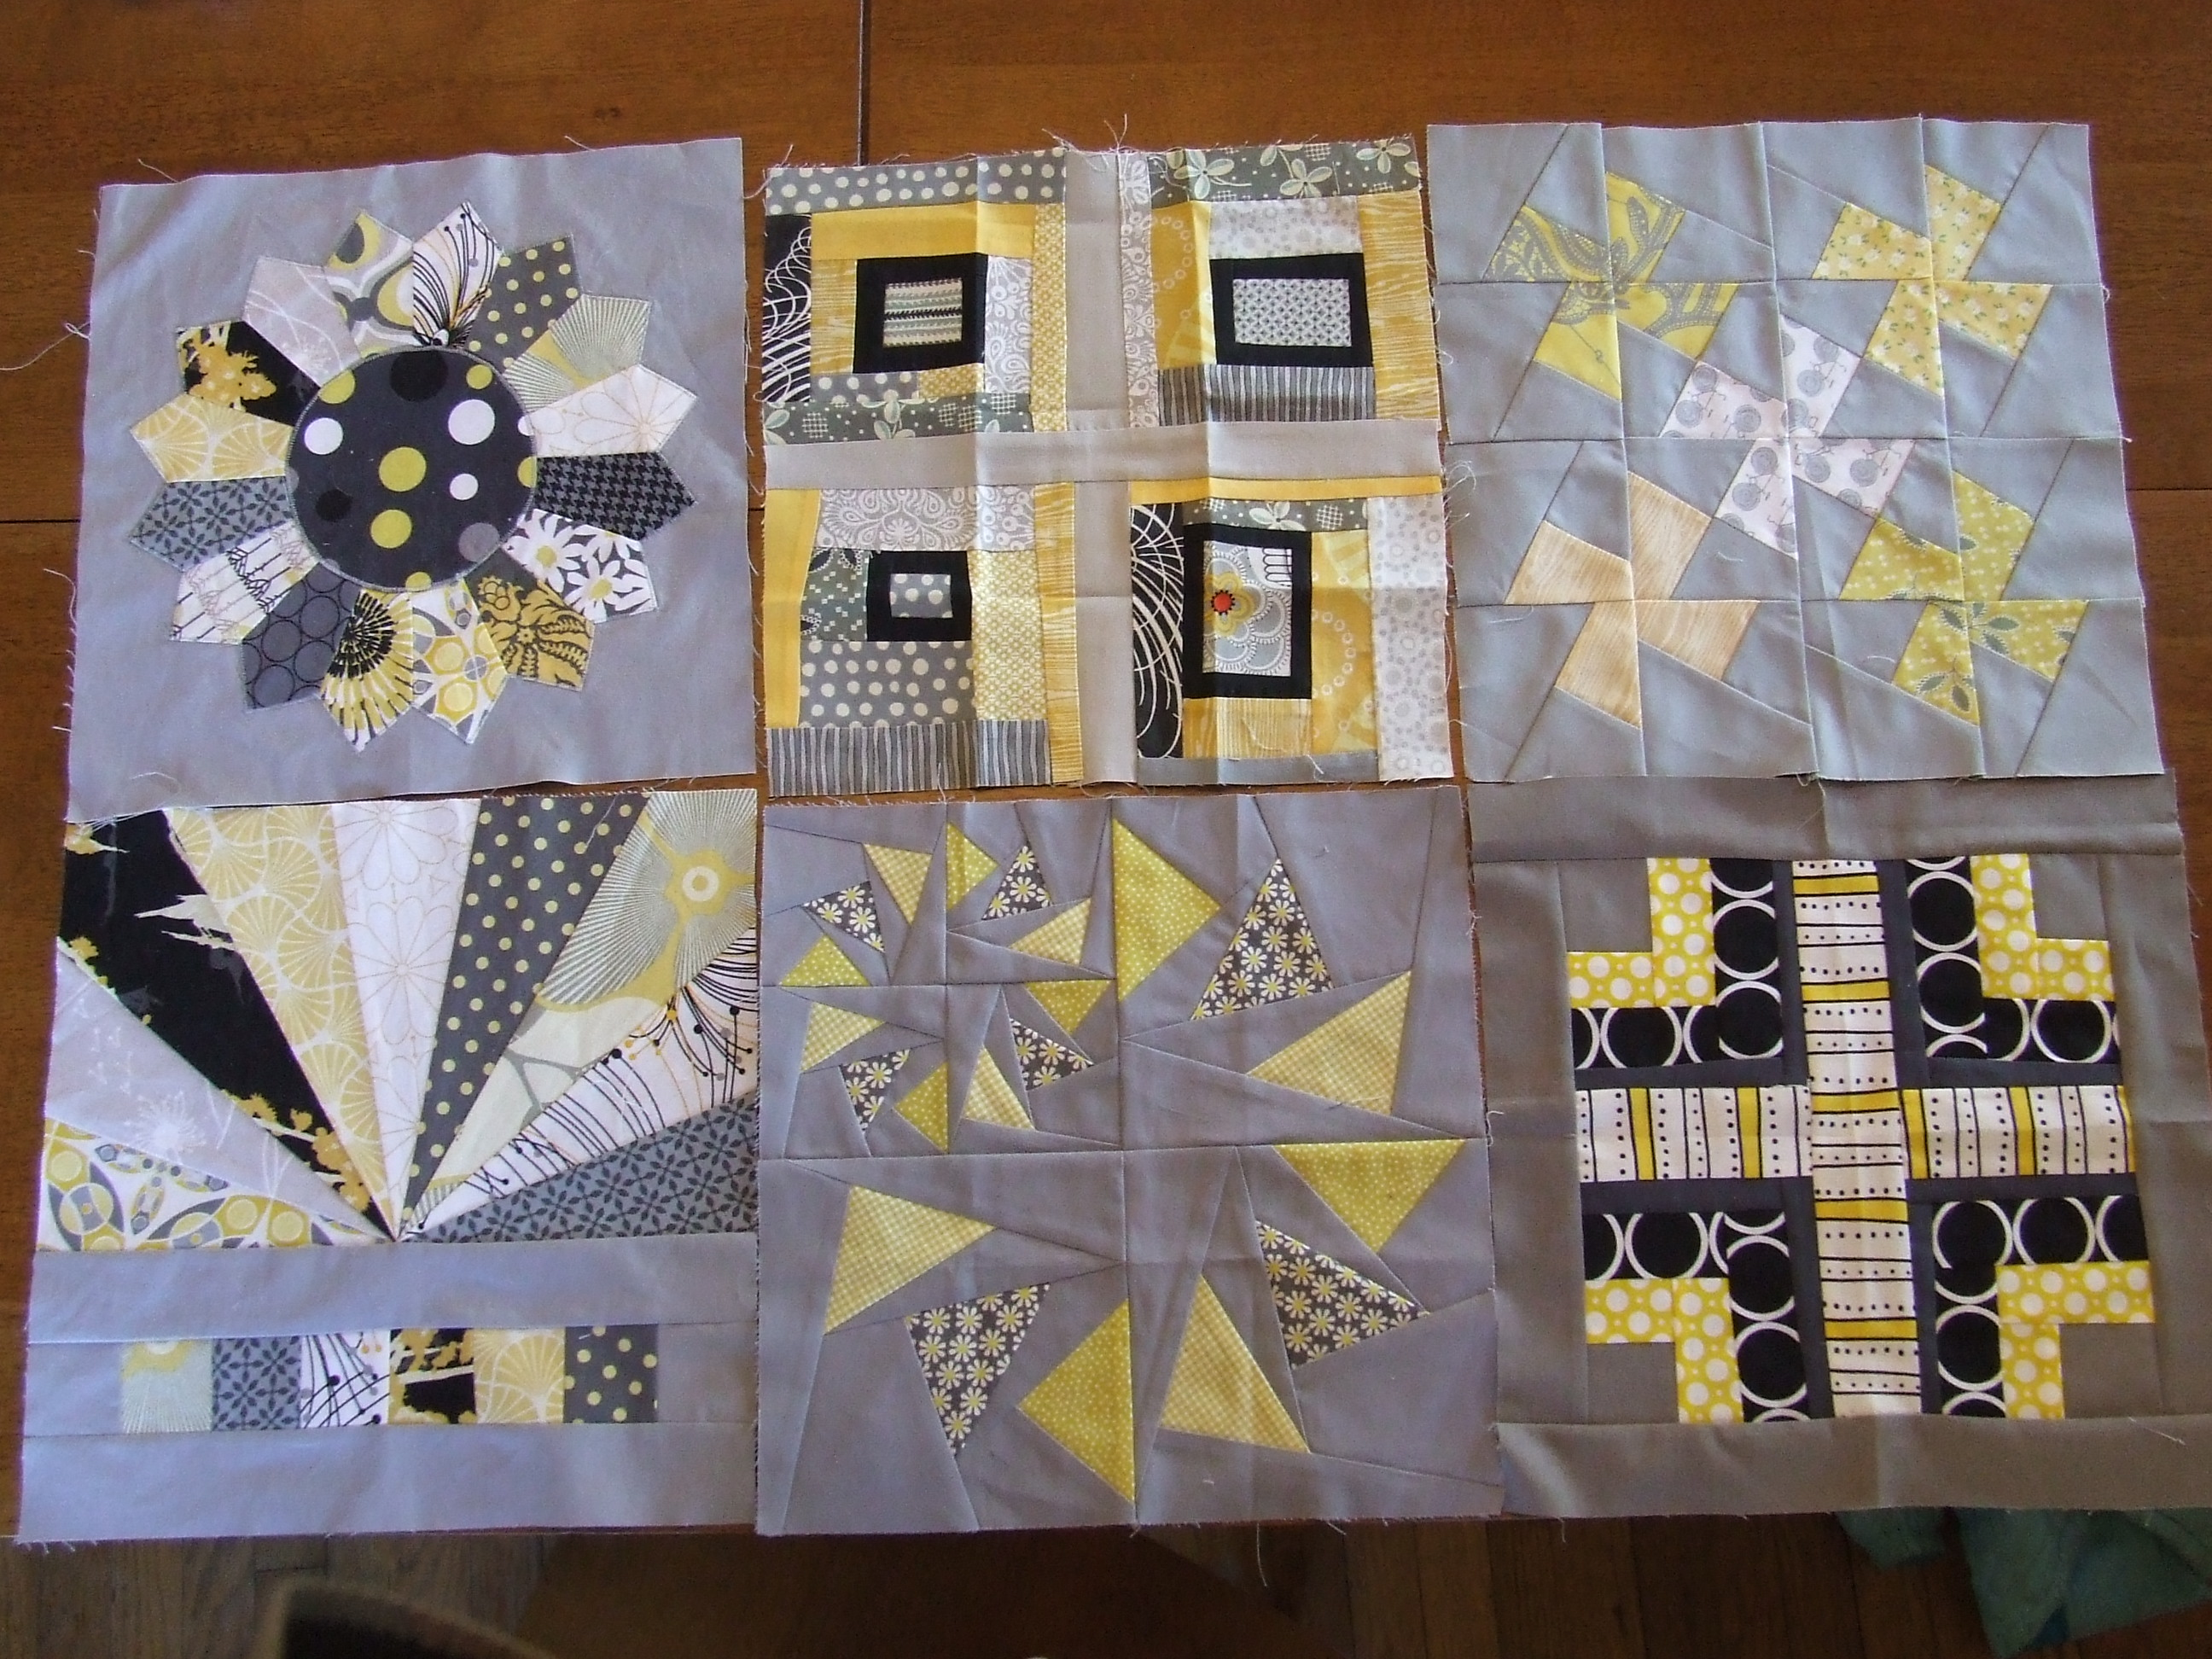 4x5 Quilt Bee, received blocks, 2011 Q4 + my additions